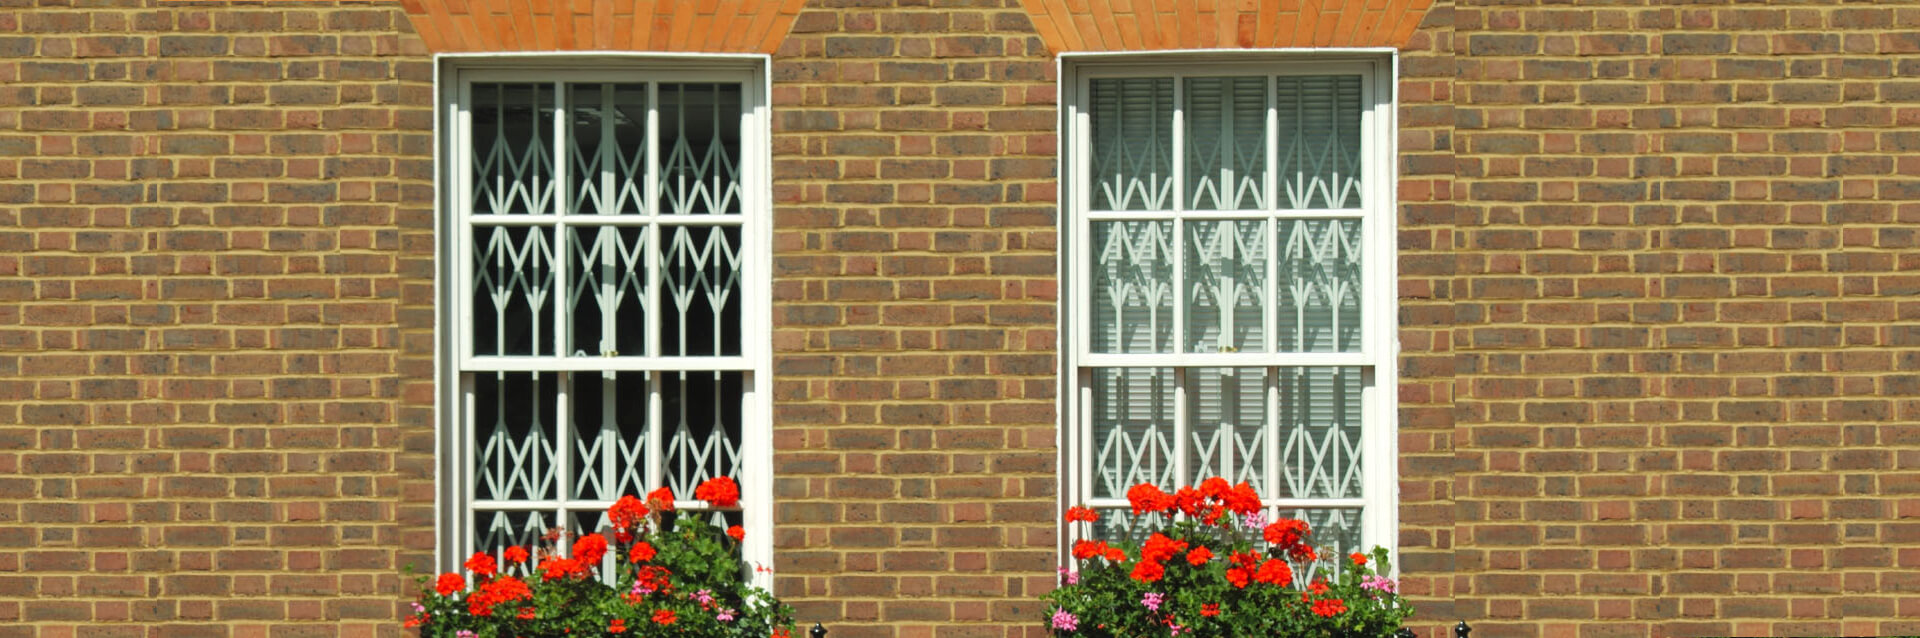 WINDOW SECURITY GRILLES